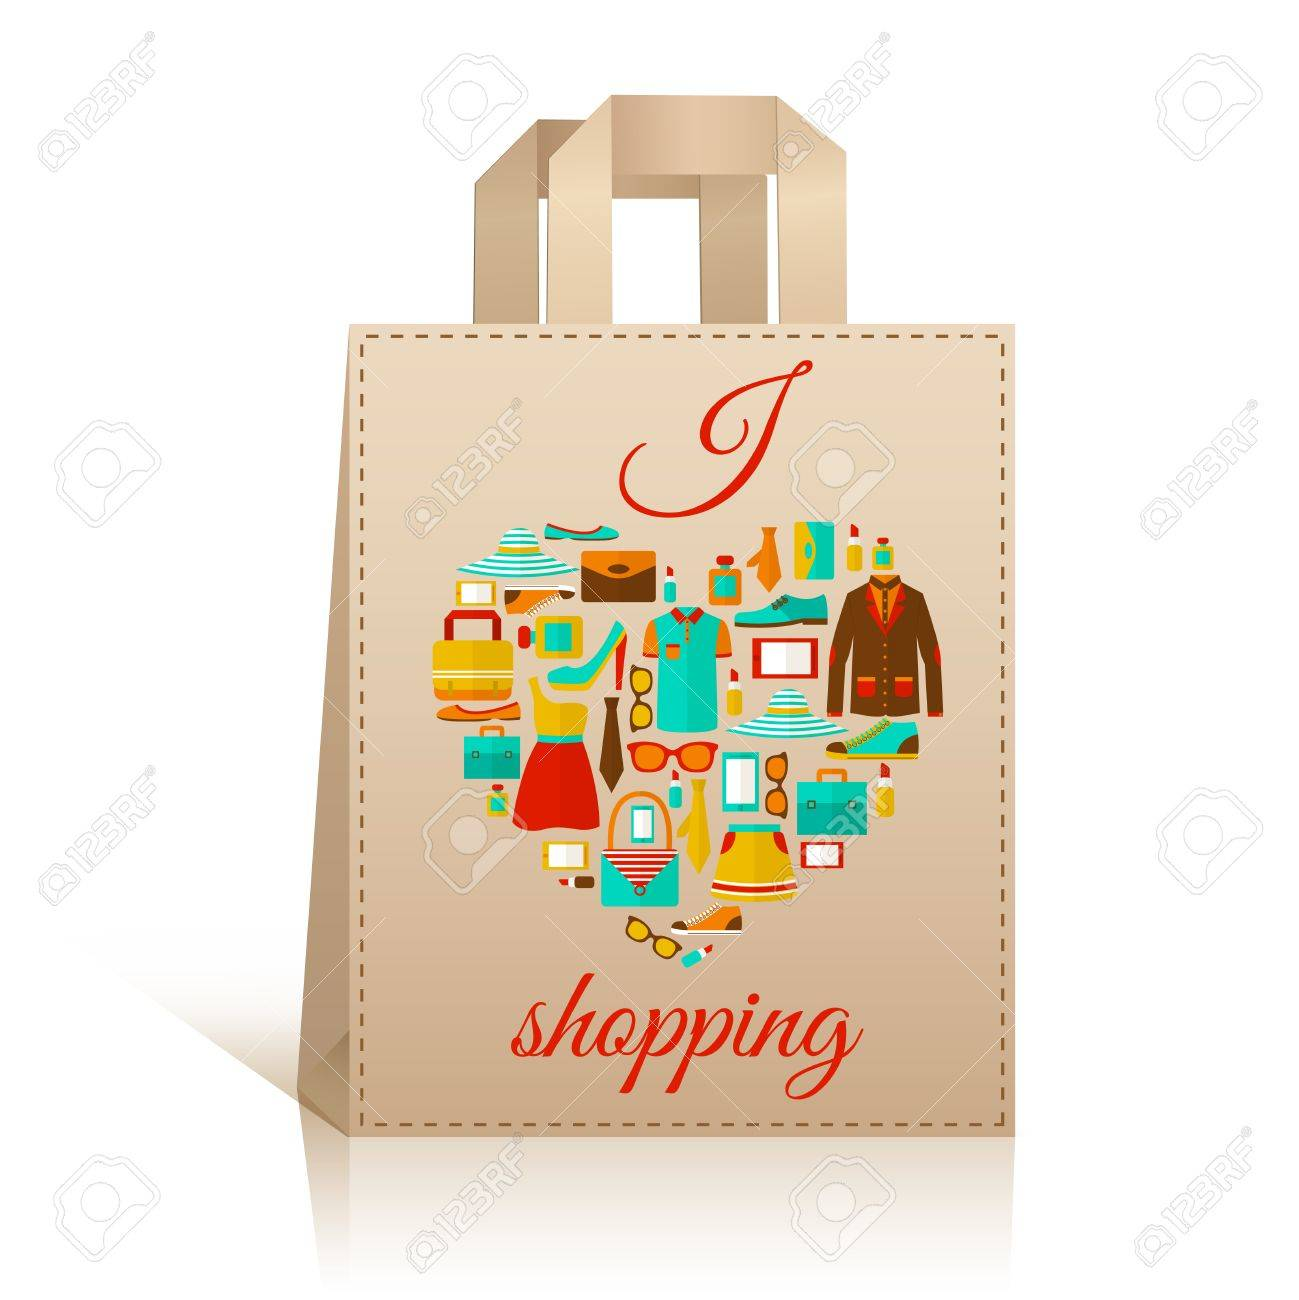 Big Carry Paper Sale Shopping Bag Design Template With Love Heart Royalty Free Cliparts Vectors And Stock Illustration Image 27139554